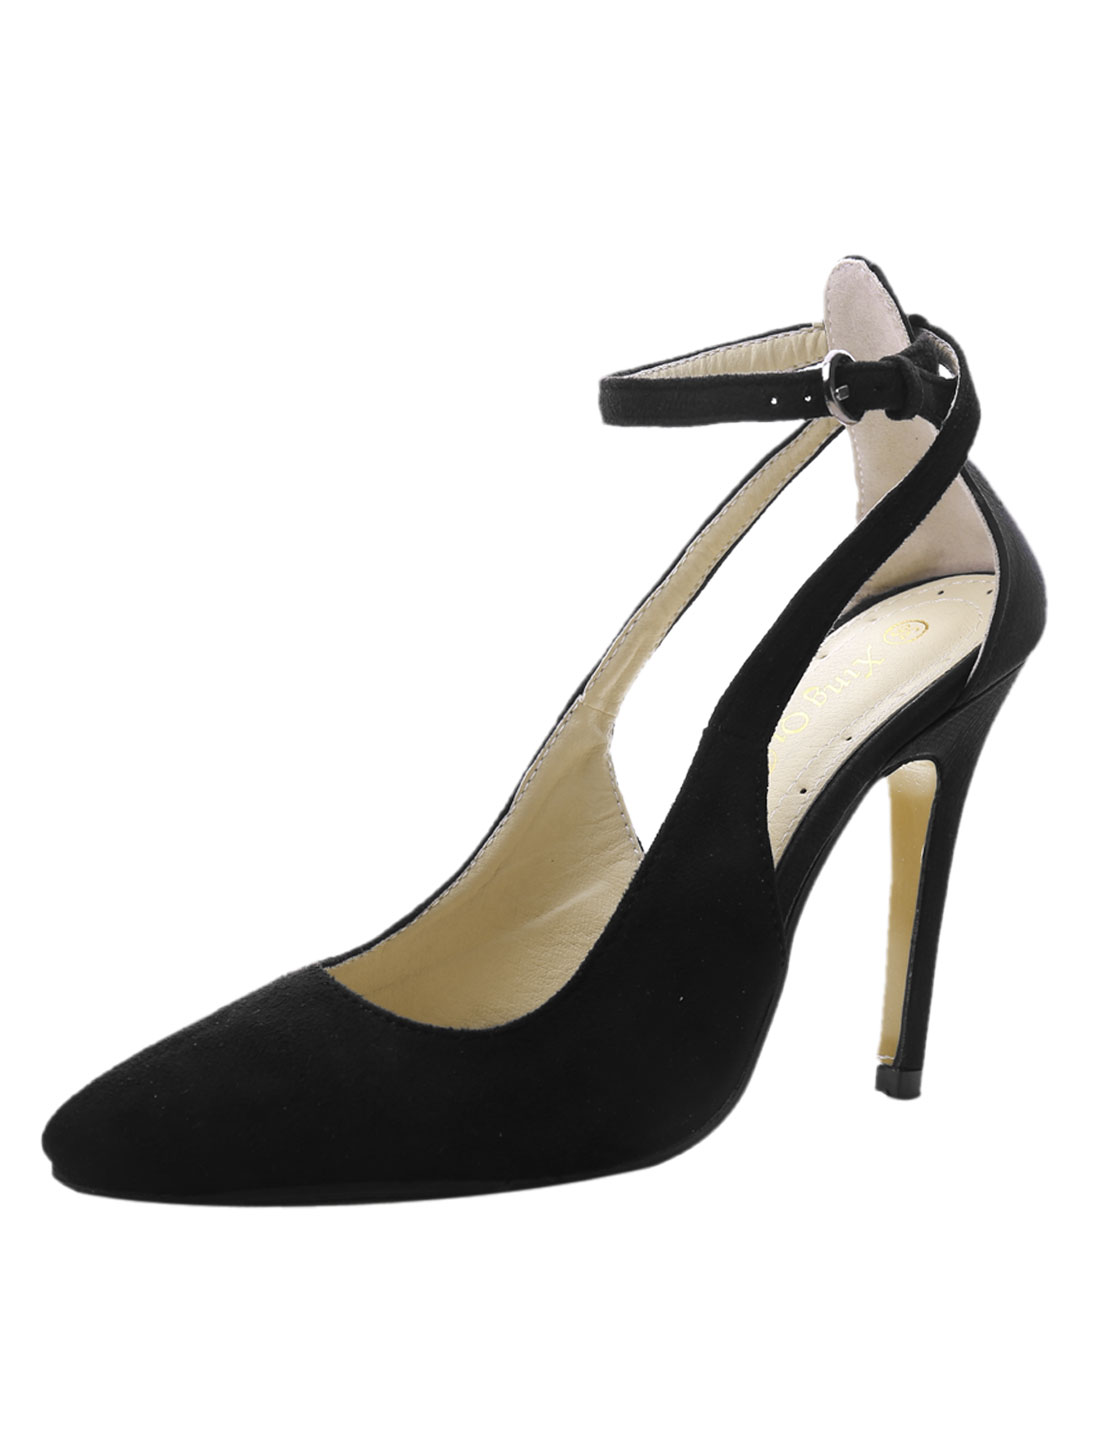 Women Sides Cutout Pointed Toe Adjustable Ankle Strap Pumps Black US 5.5